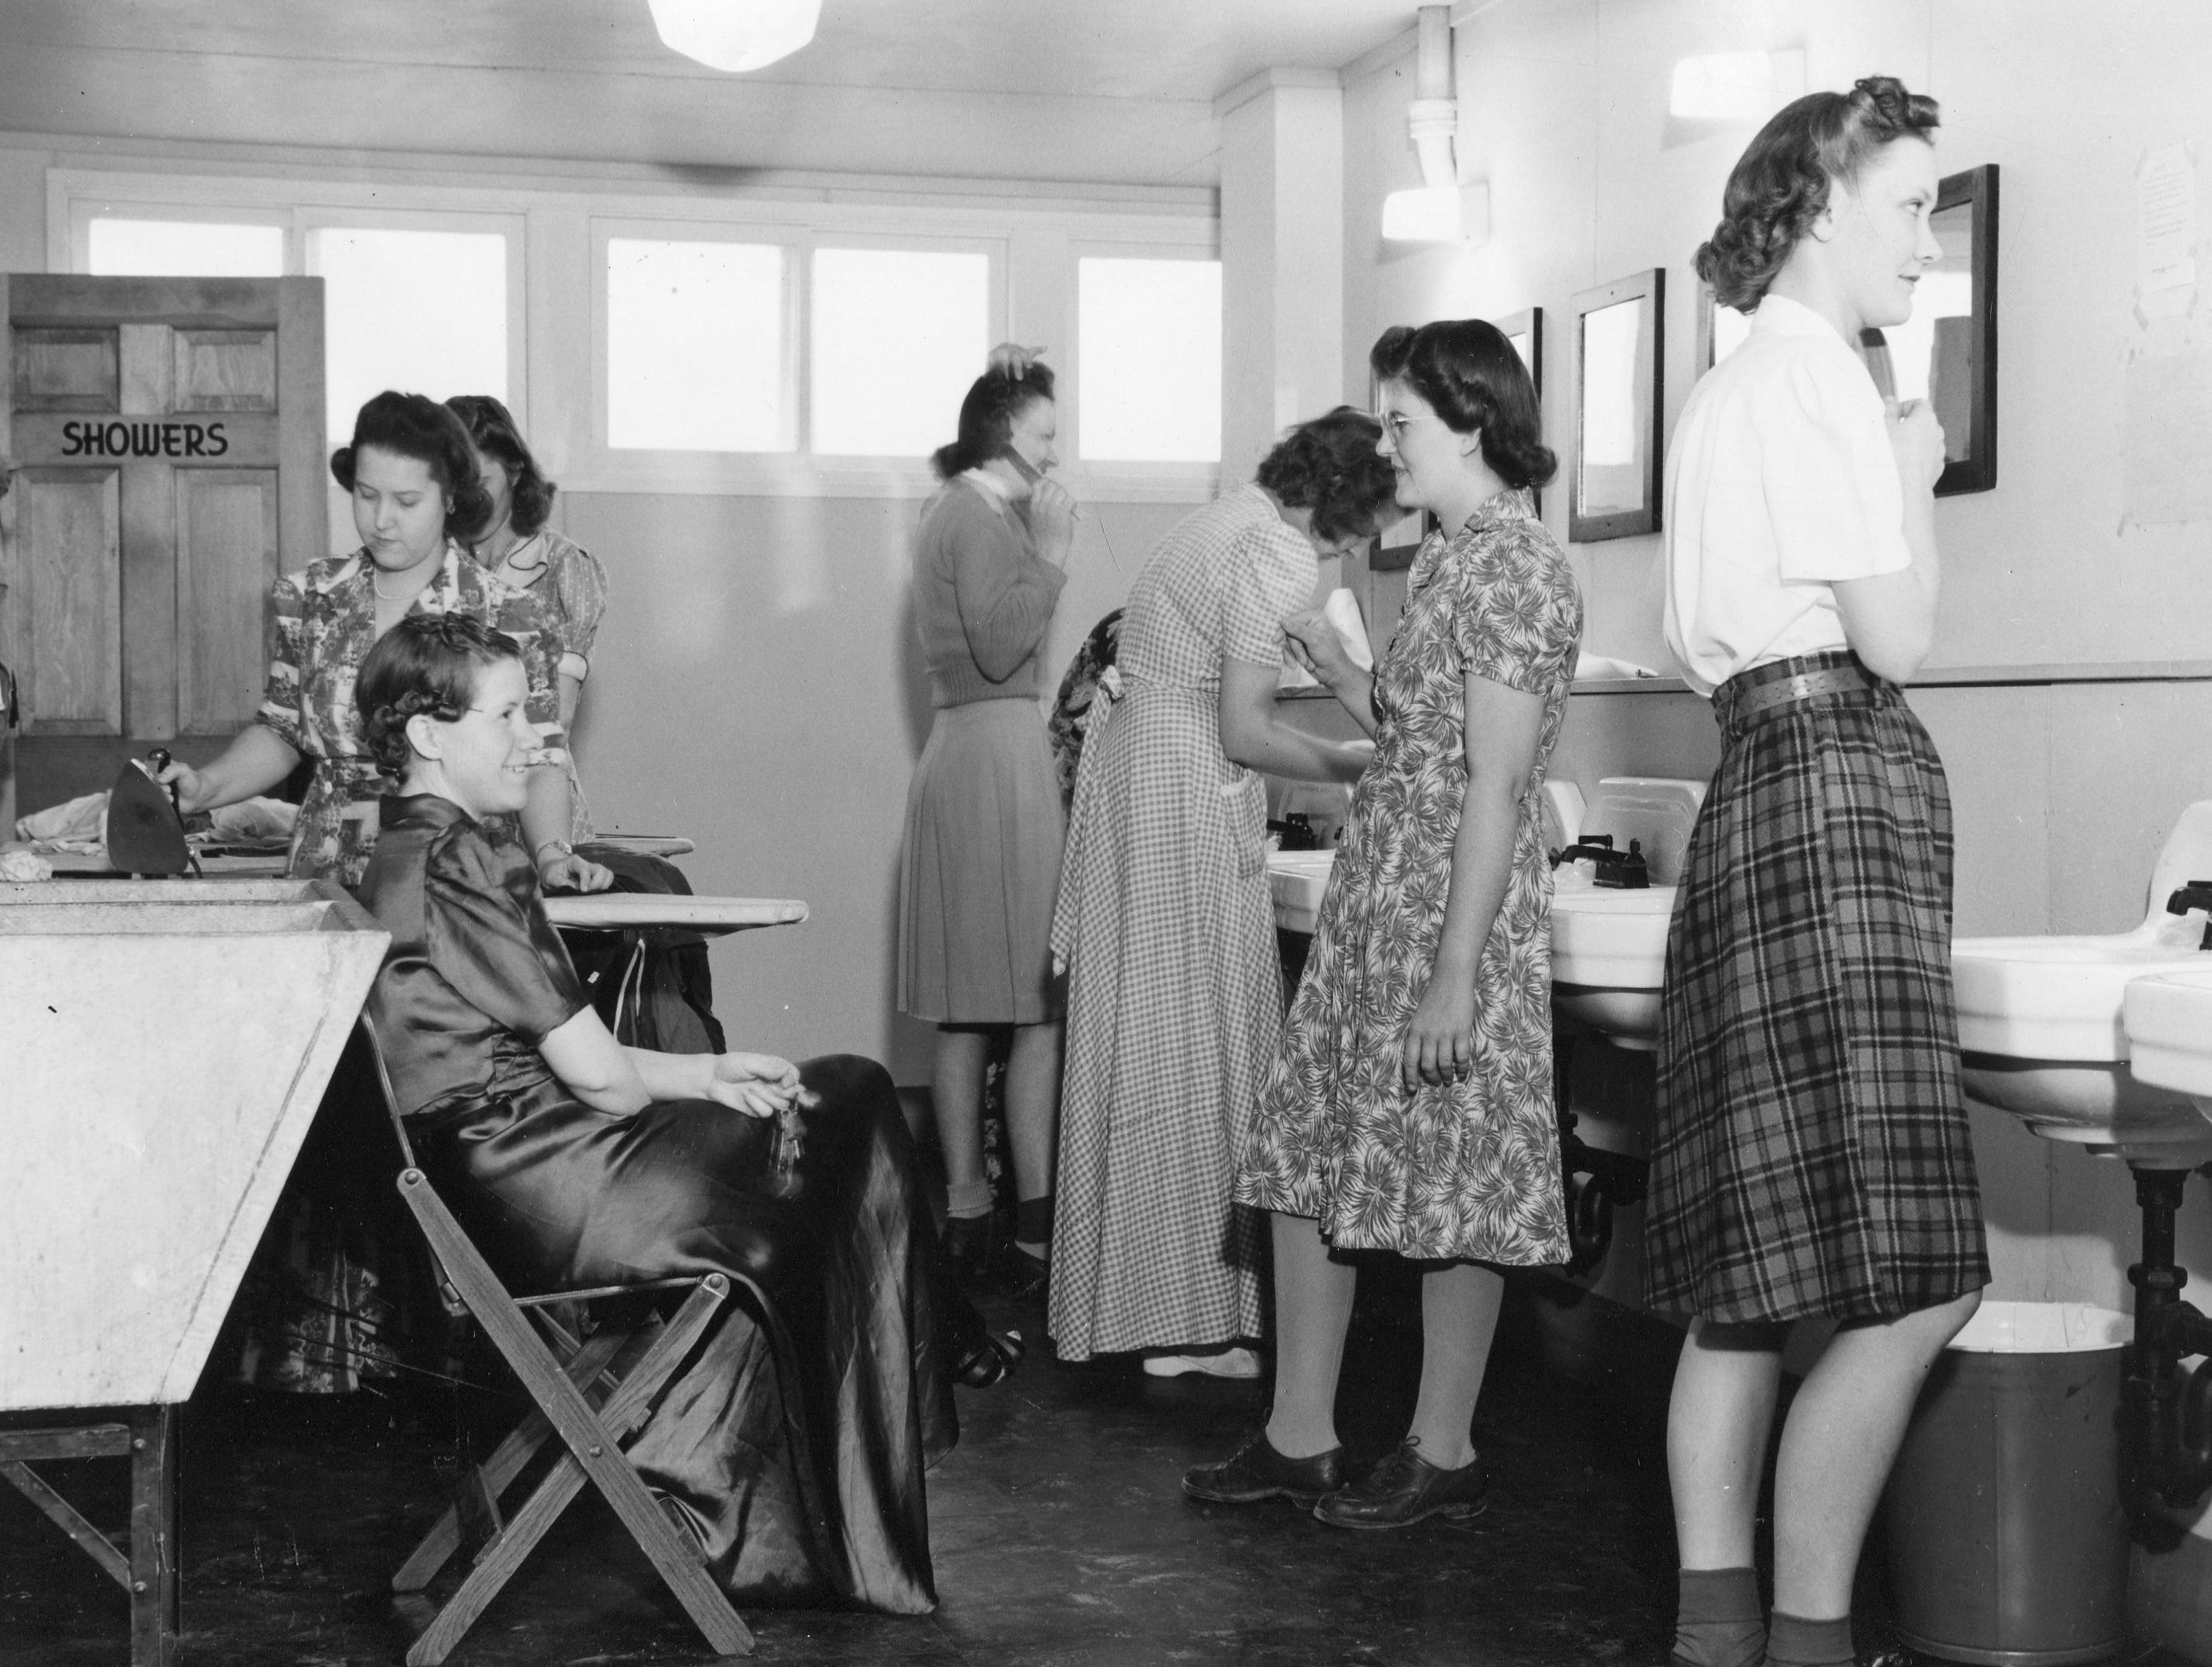 Willow Run, the aircraft manufacturing plant near Ypsilanti, was more than just a workplace.  It had temporary housing for thousands of workers. The women above use the washroom at West Lodge, a dormitory with 1,960 rooms, on Oct. 6, 1944.